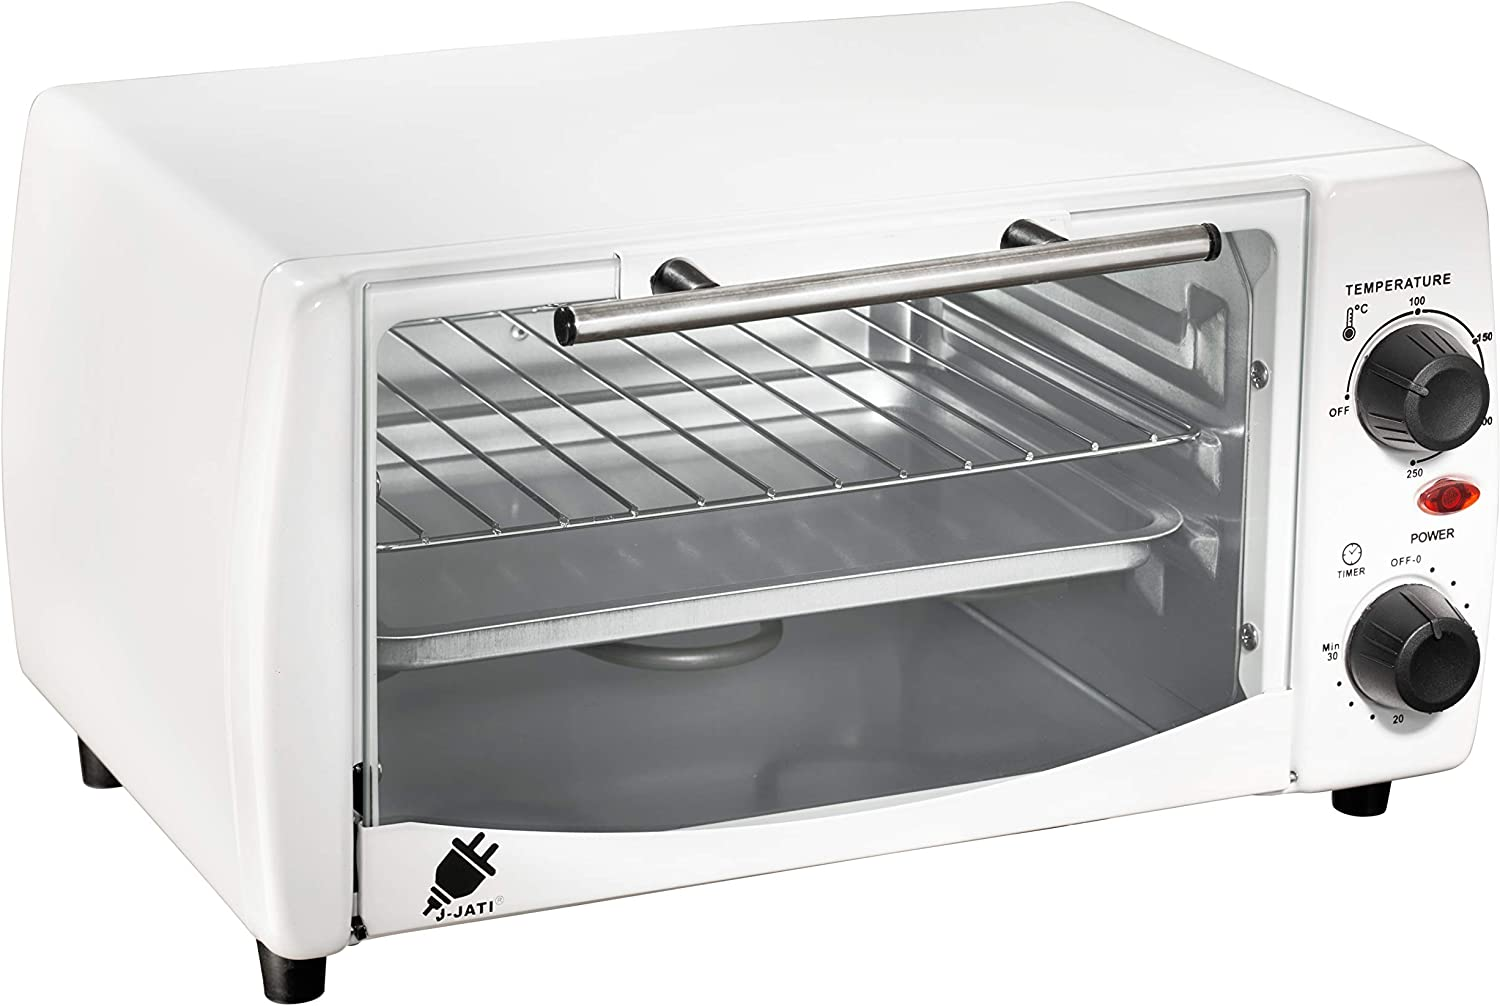 J-Jati Countertop oven, Convection oven, Countertop Toaster Oven Electric. Toast, Bake, and Broil. glass door, Thermostat in celcius, Non-stick tray, Indicator light, 800W, SK-12 (White)